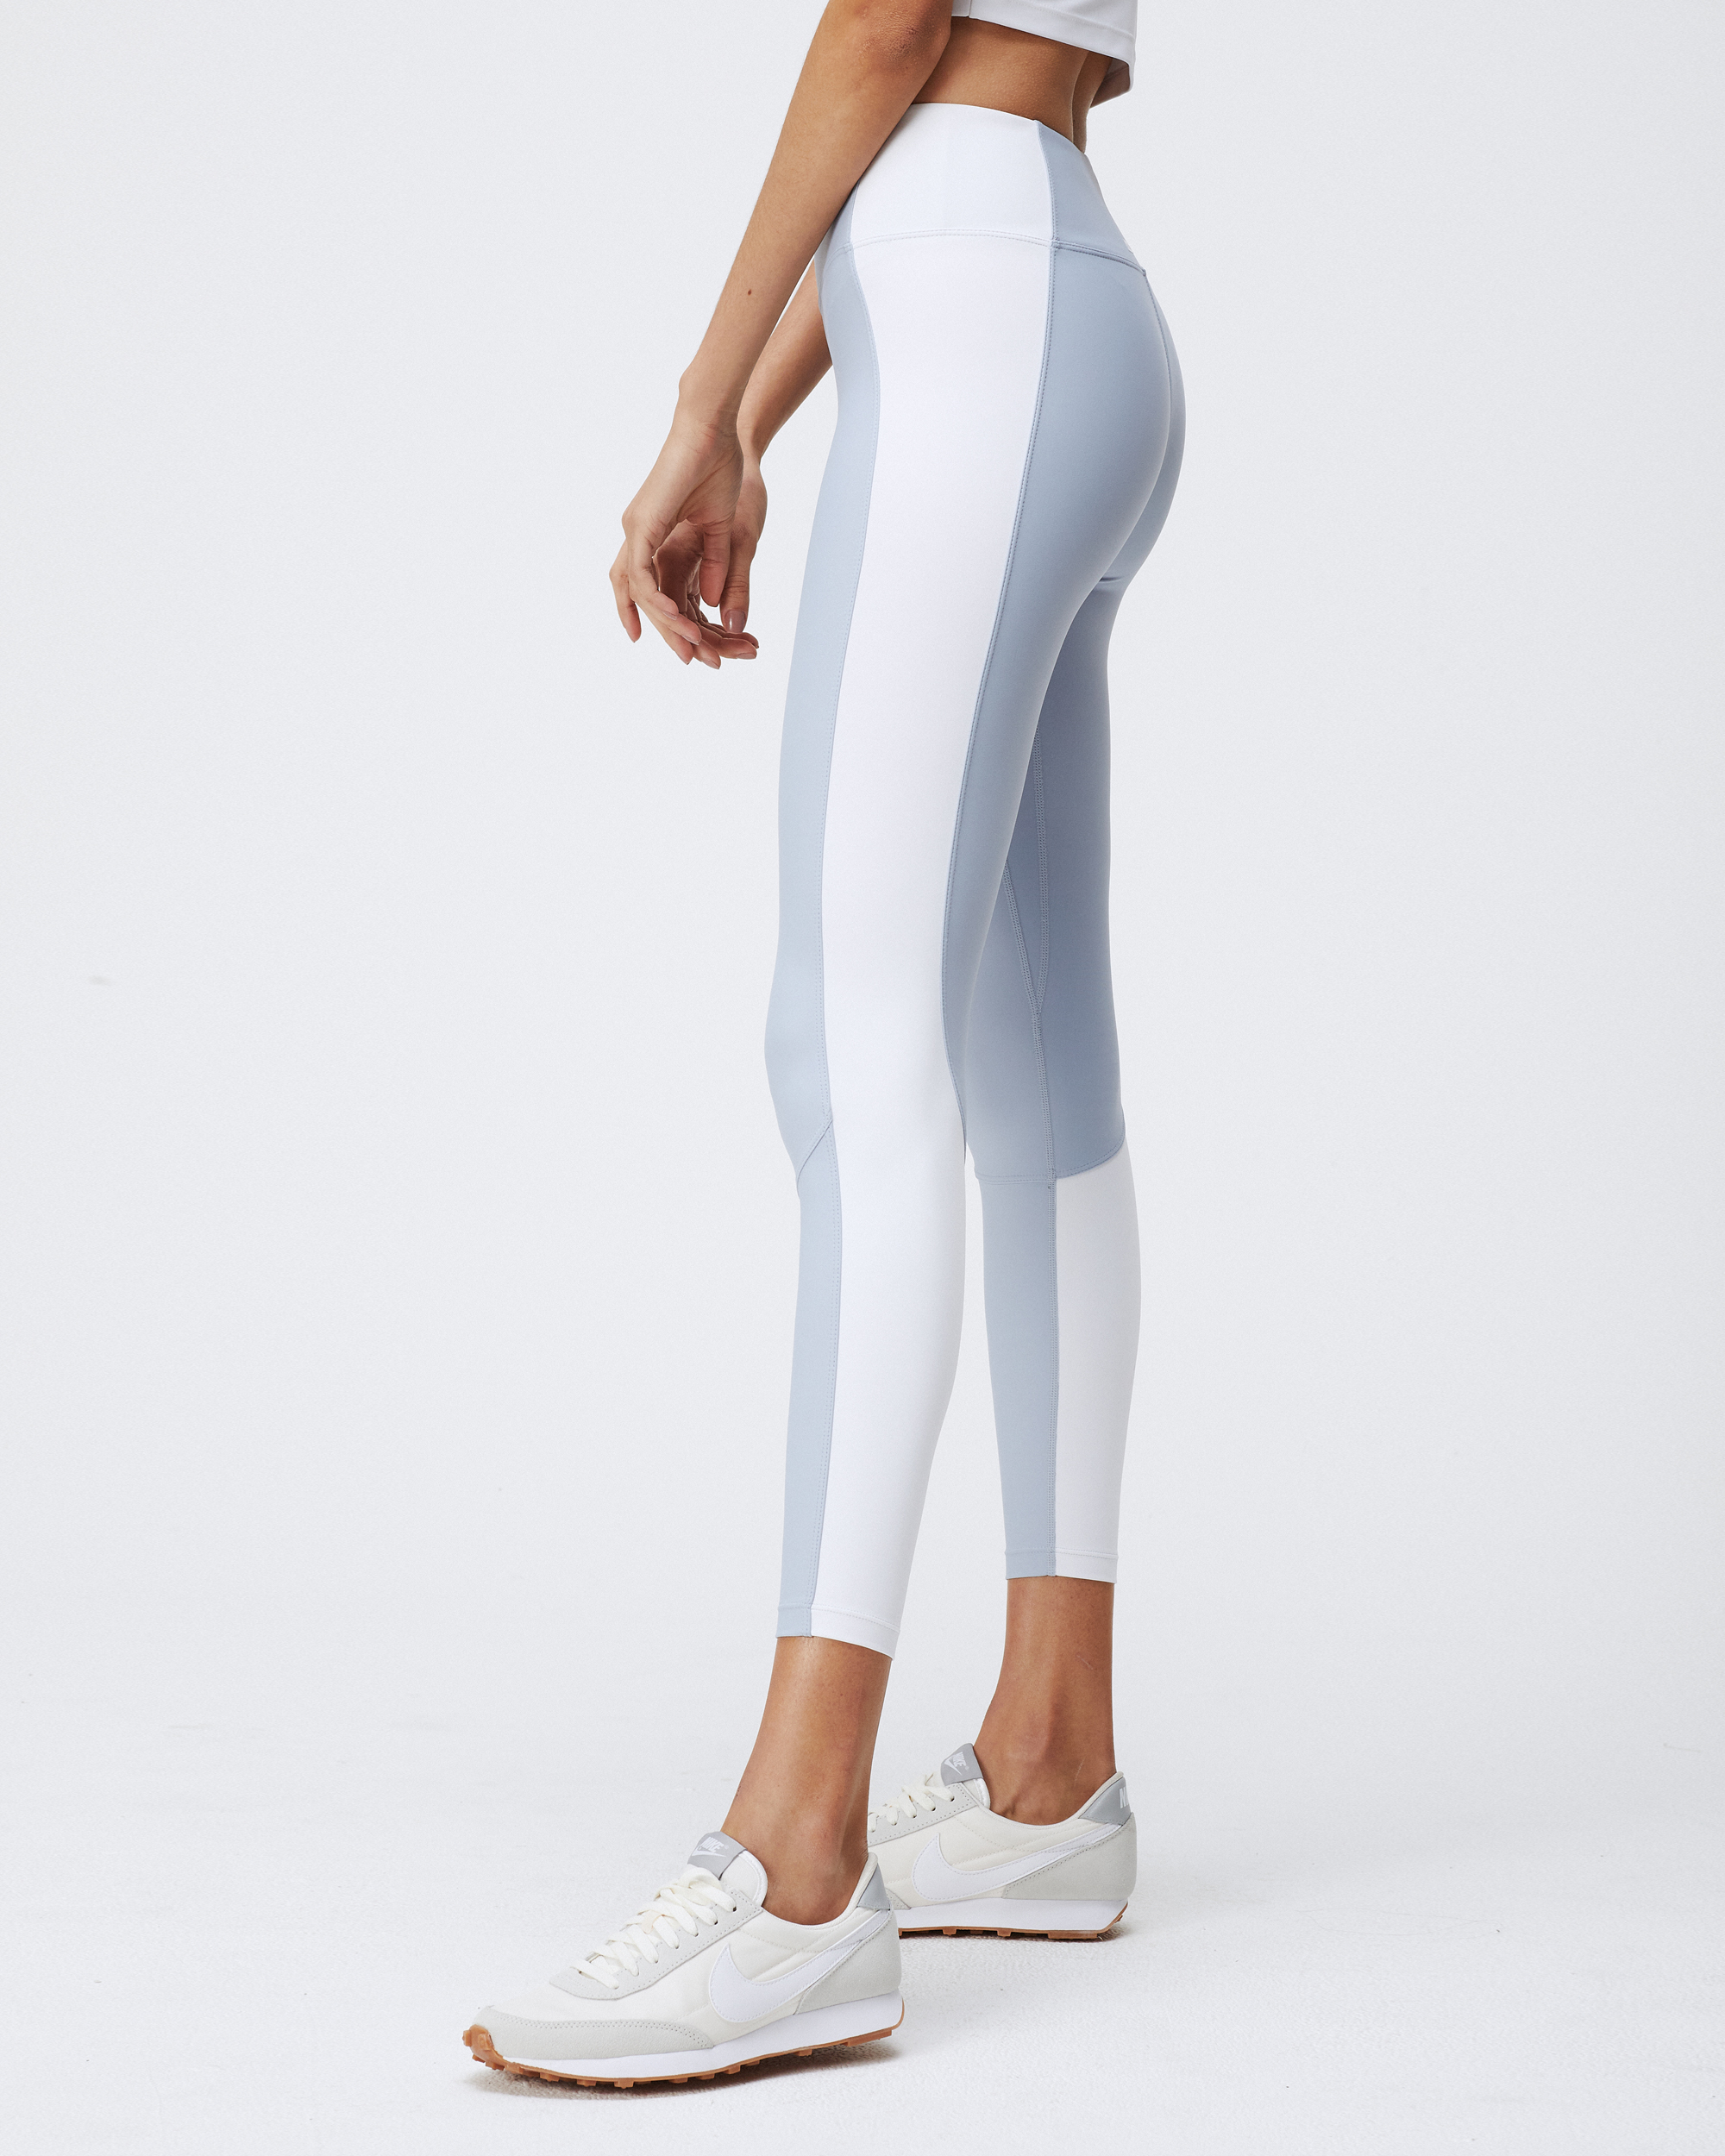 ALEX LEGGINGS CLOUDY BLUE & WHITE COMBO